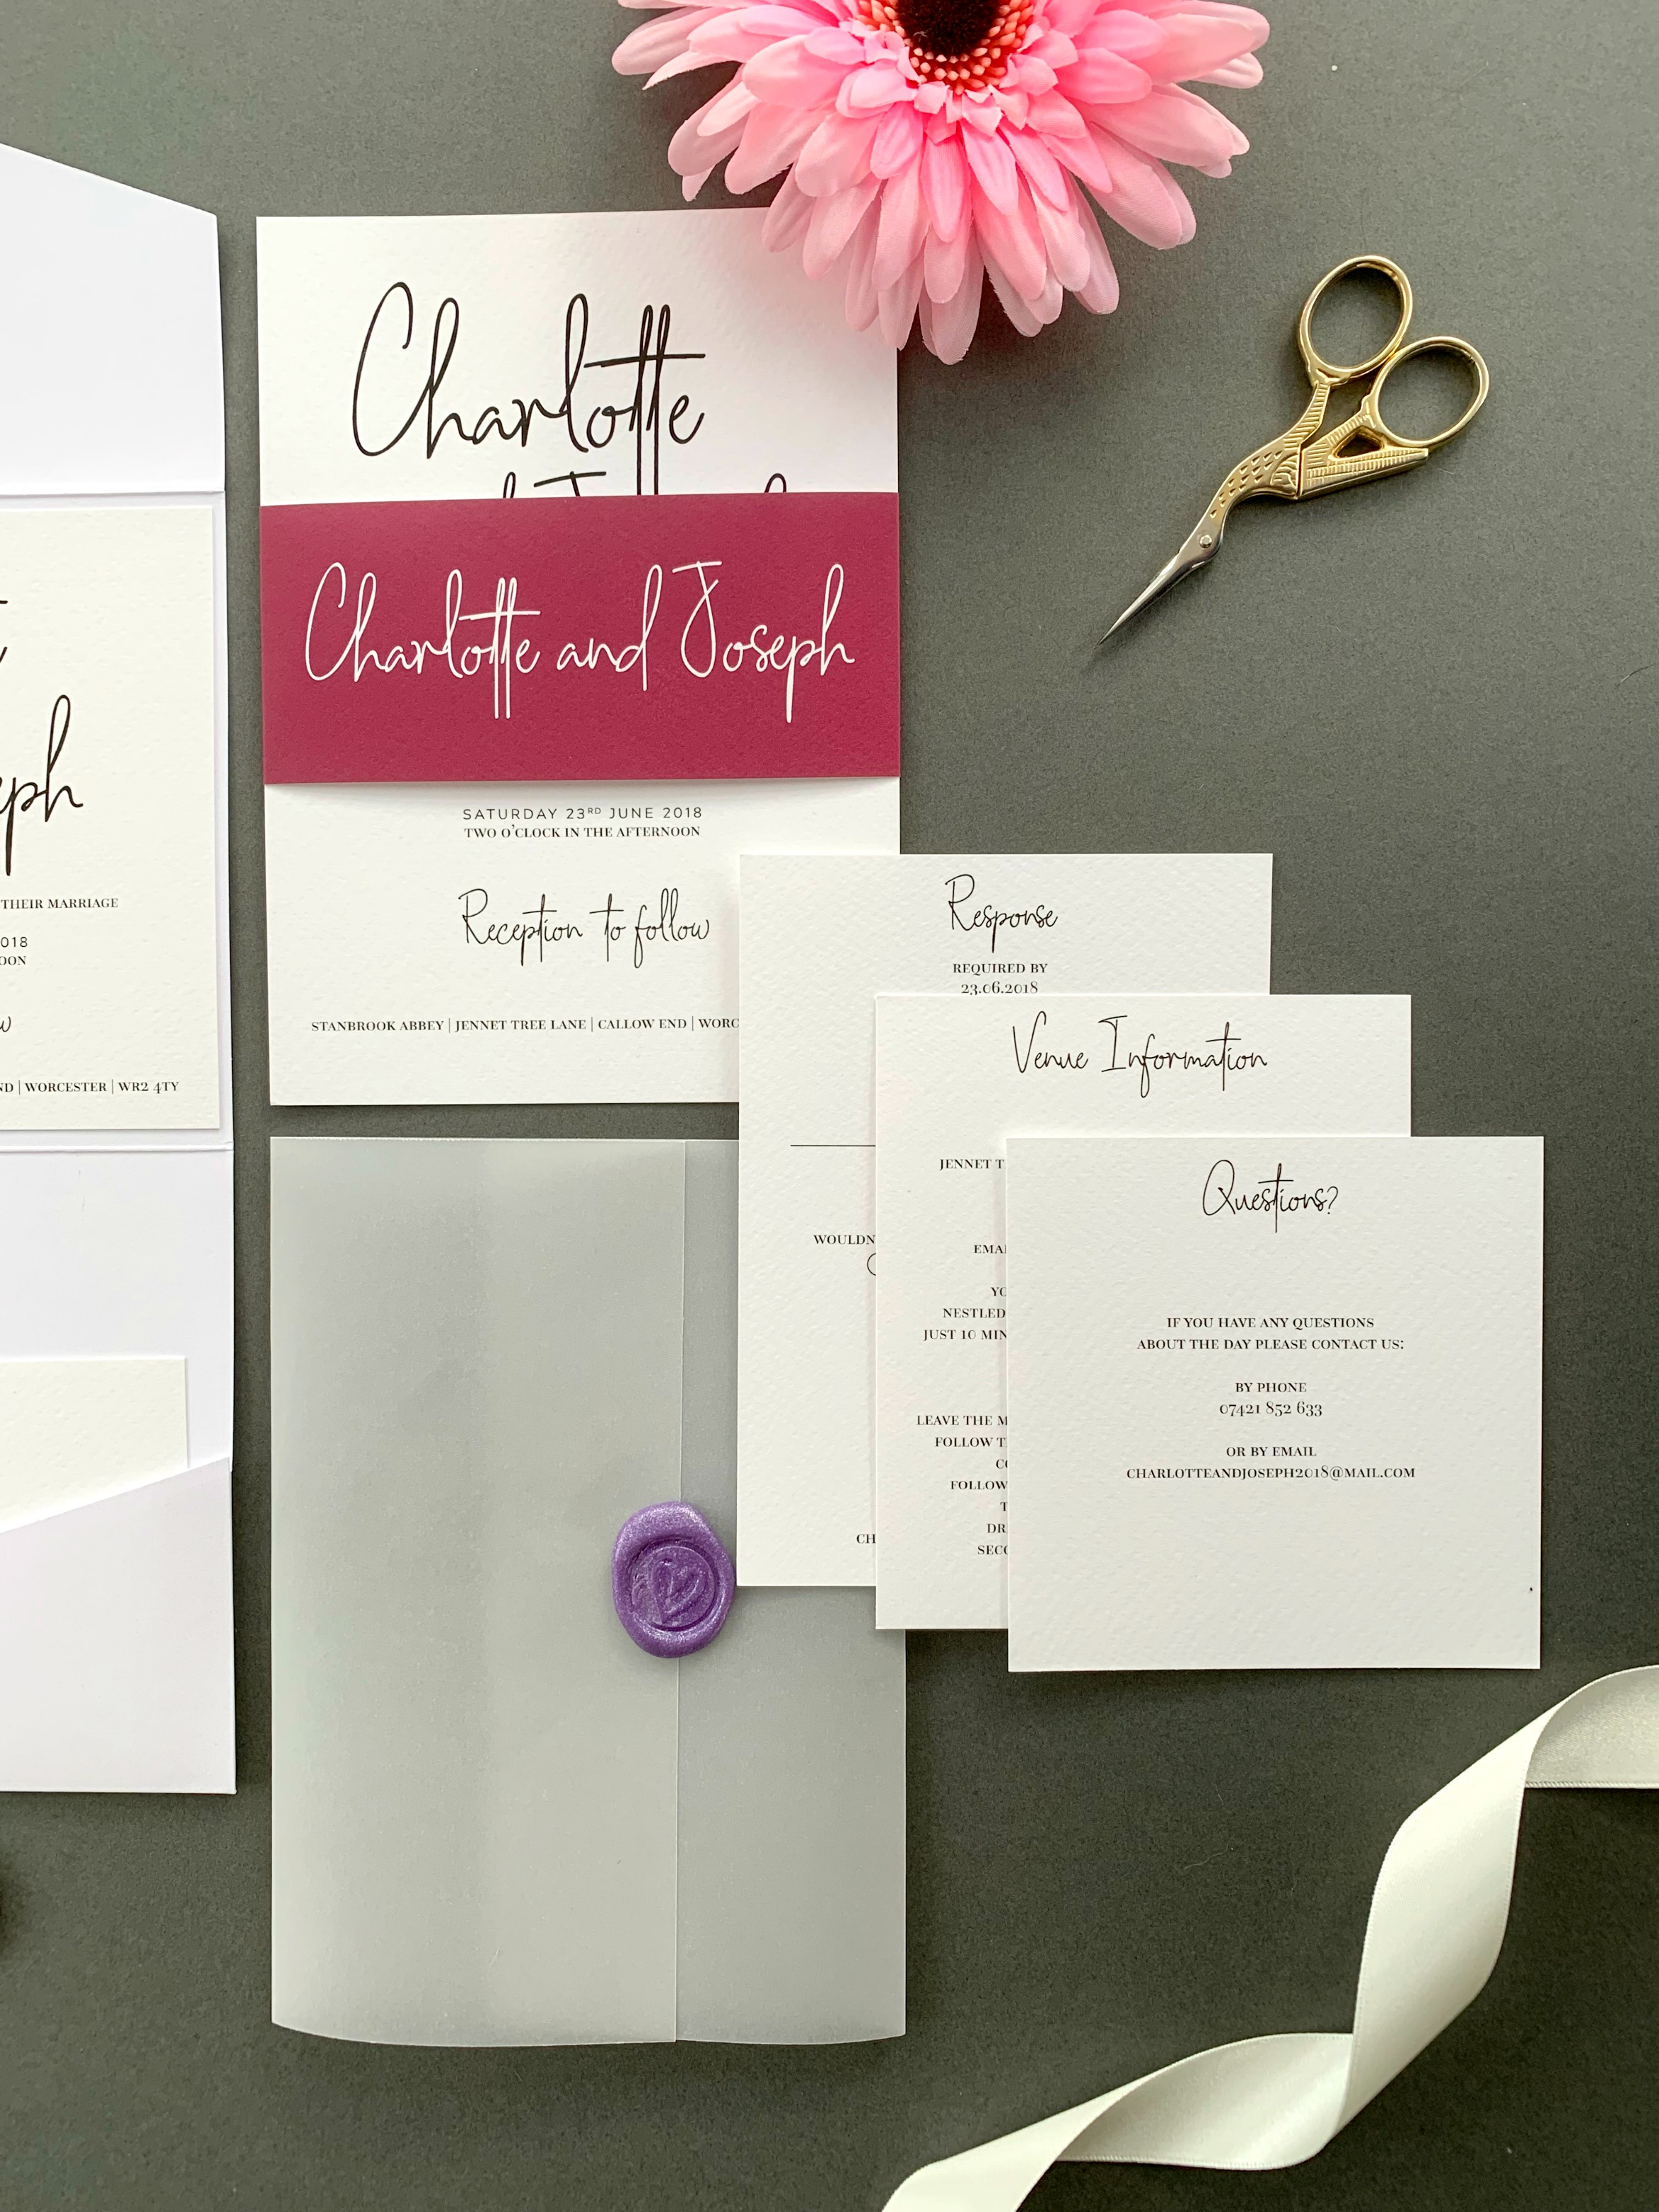 Chancery Lane classic invitation suite with inserts